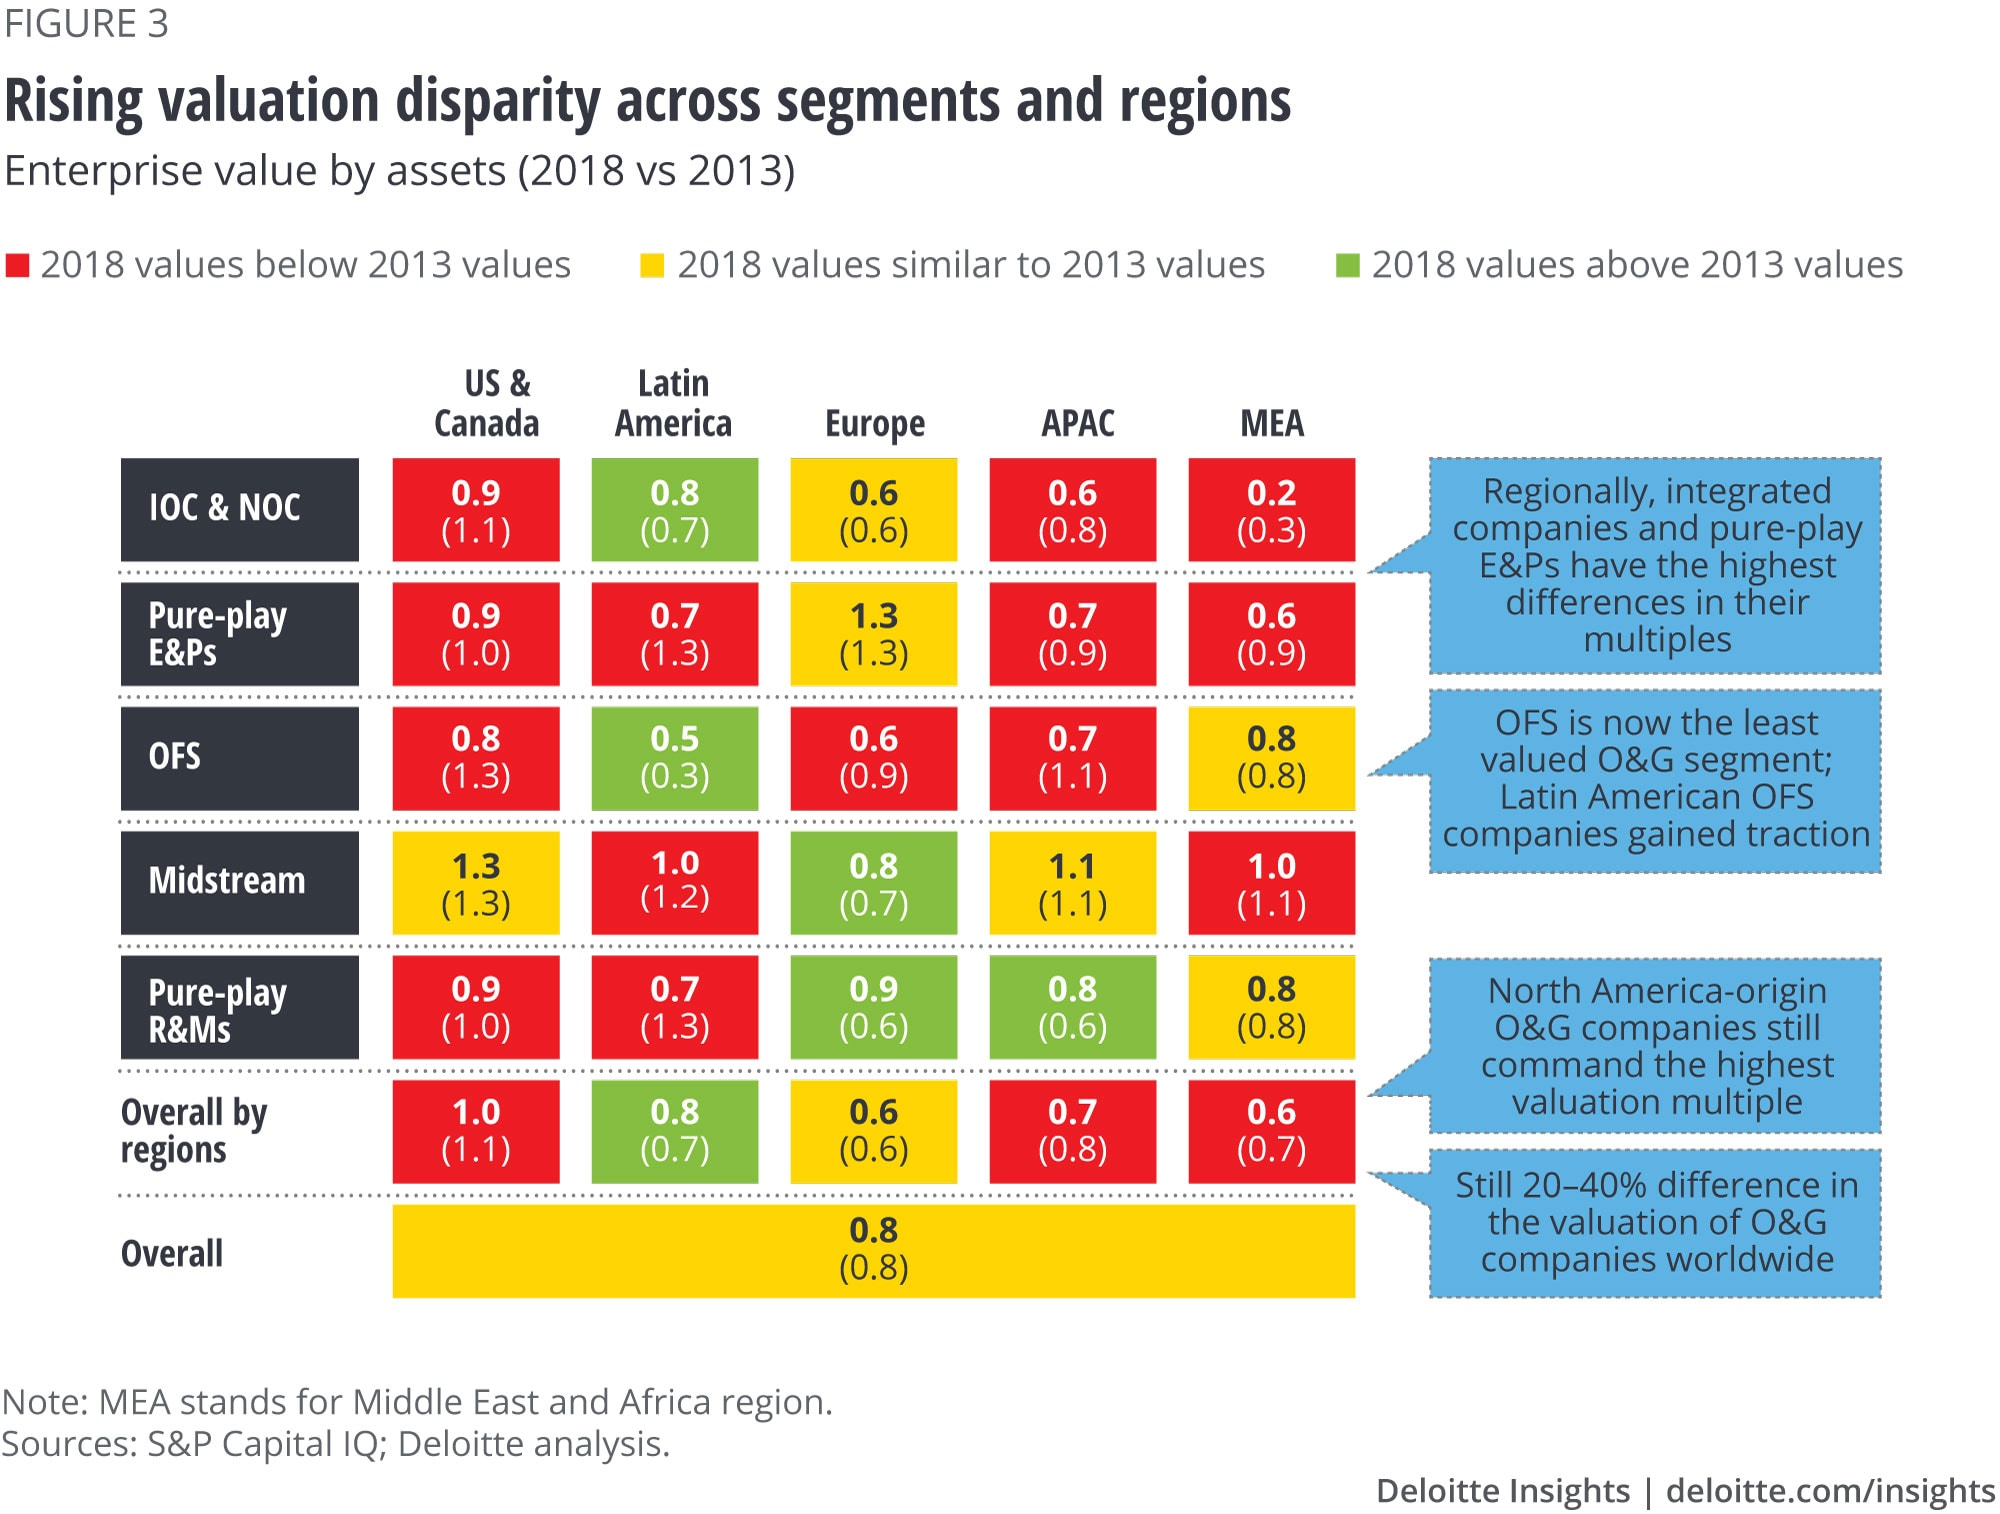 Rising valuation disparity across segments and regions